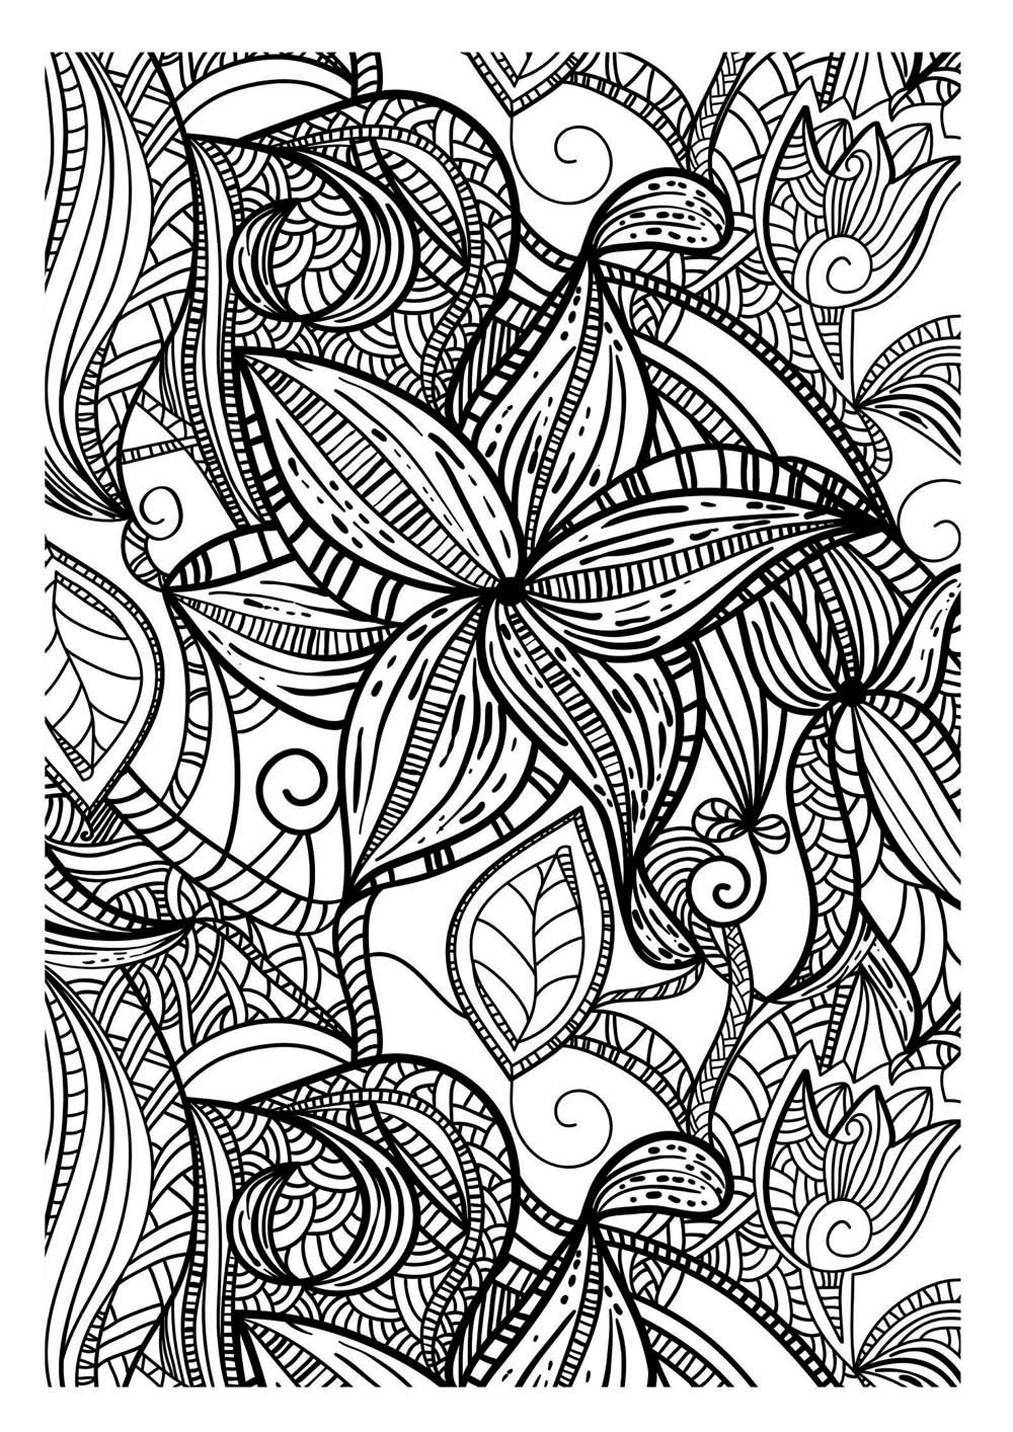 patterns for colouring for adults 15 crazy busy coloring pages for adults free coloring colouring patterns adults for for